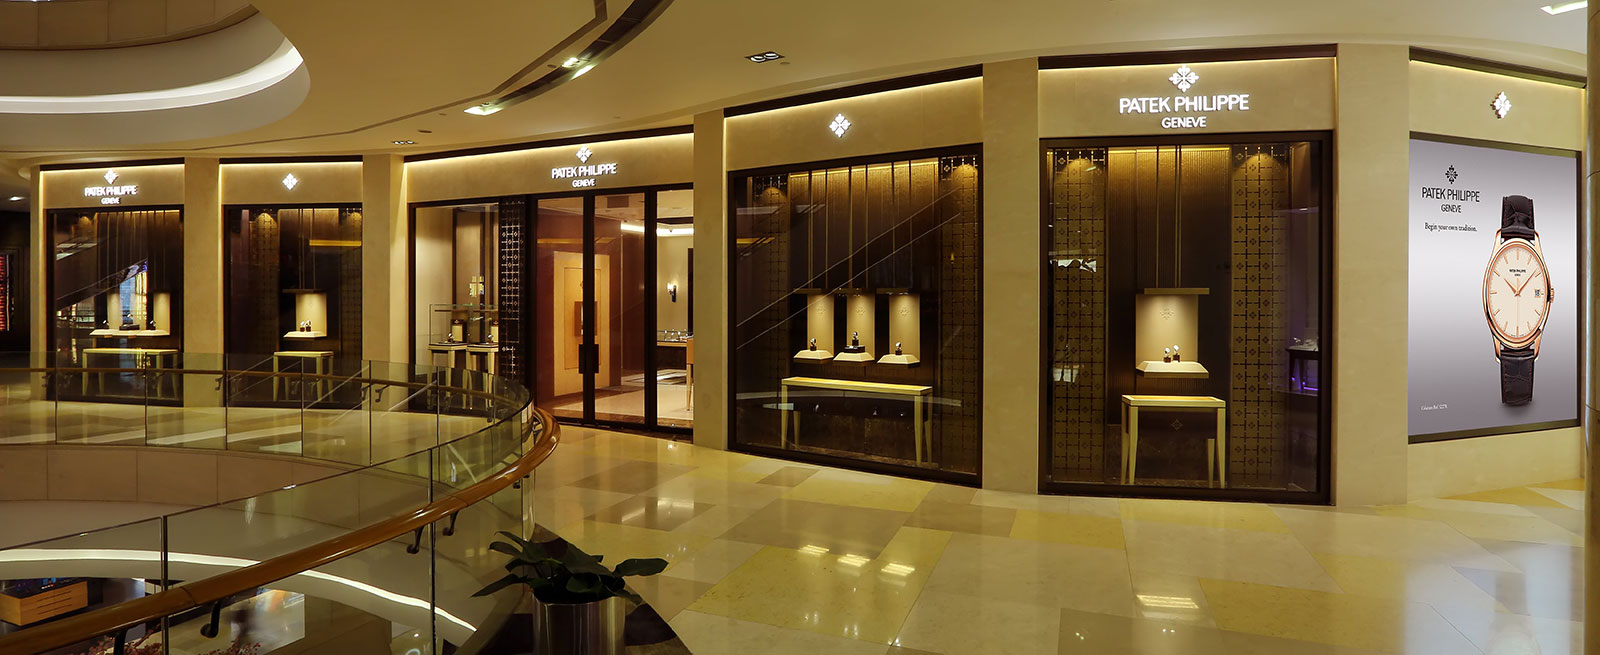 Patek Philippe boutique Singapore ION Orchard 2